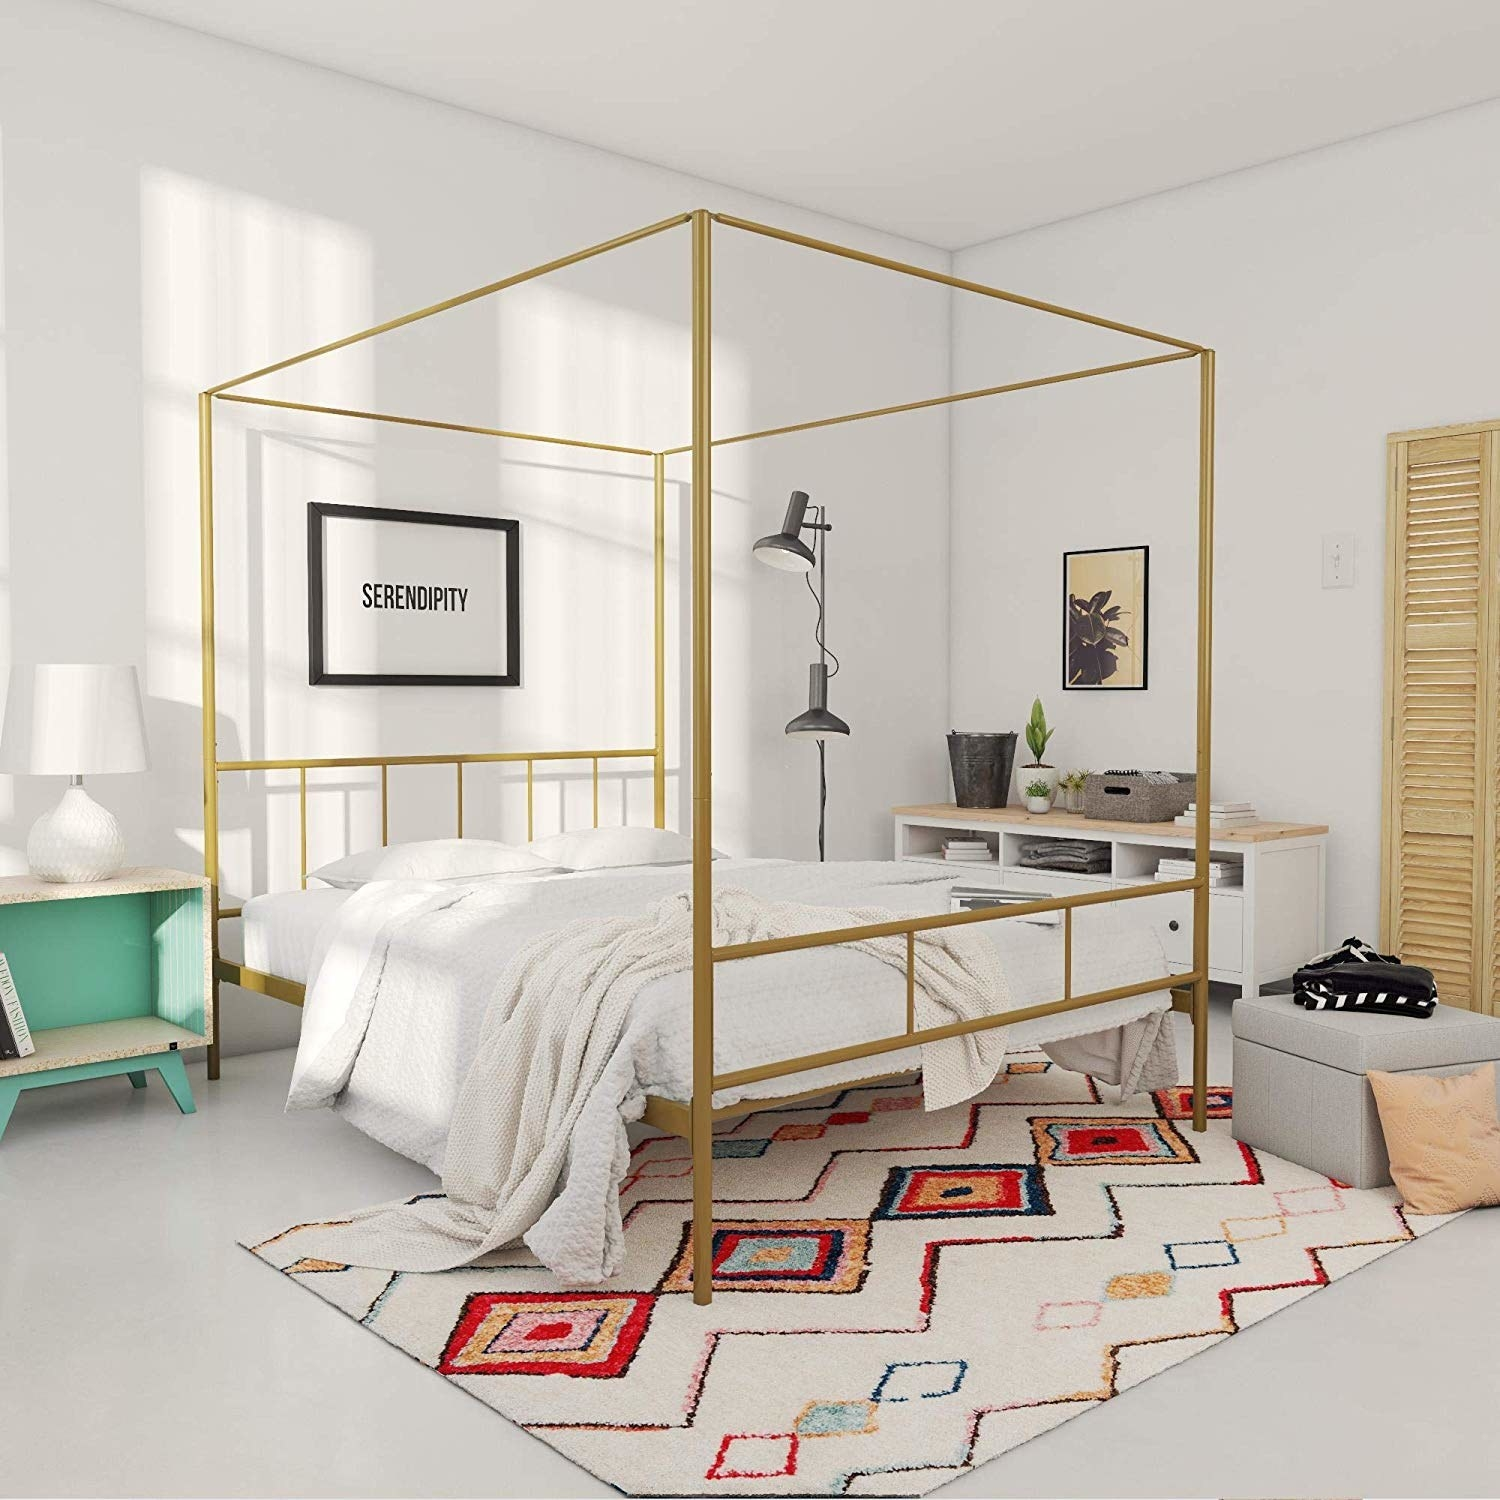 The gold canopy bed